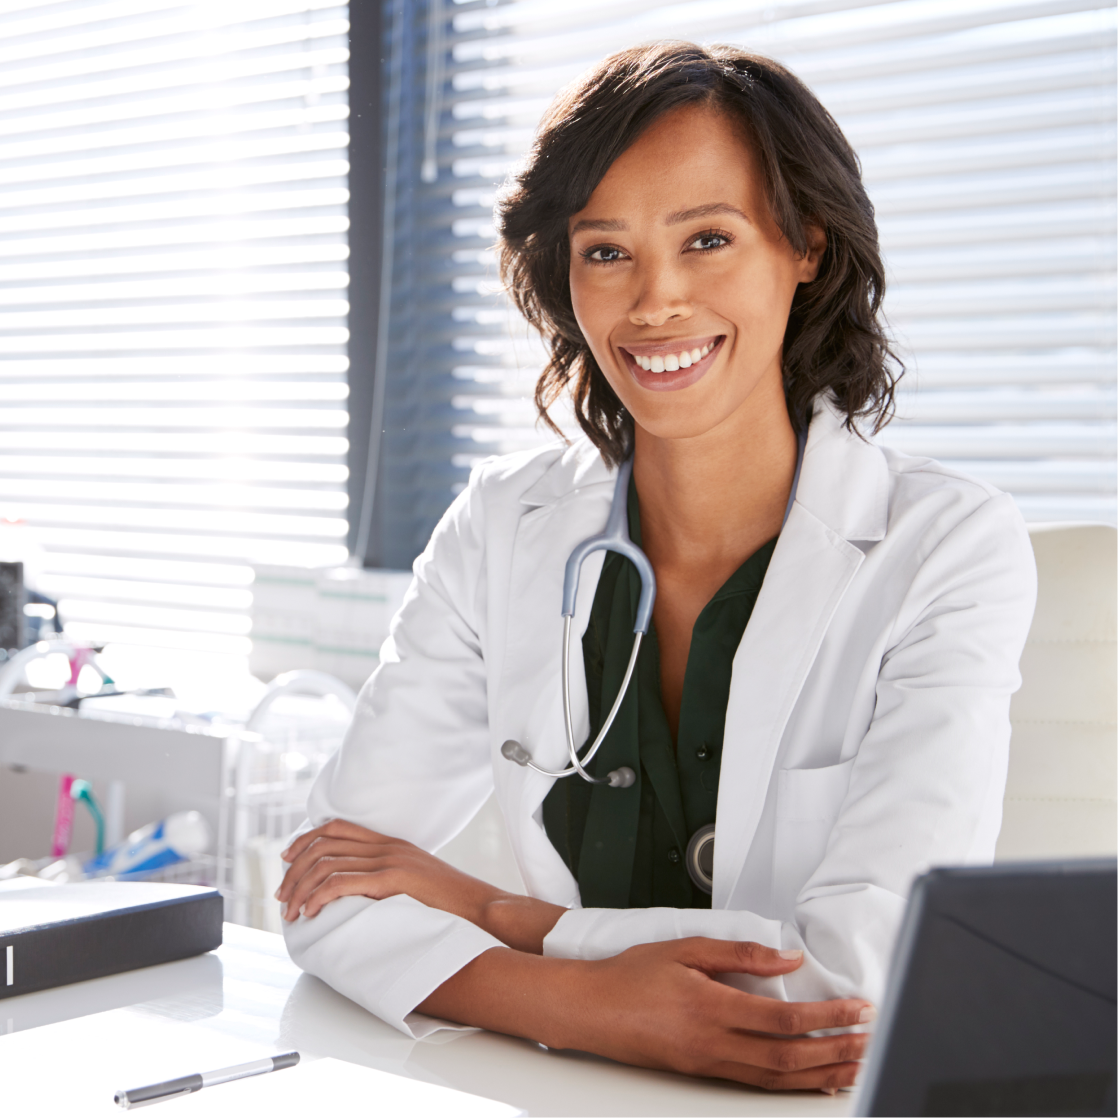 Private practice doctor, dermatology specialist